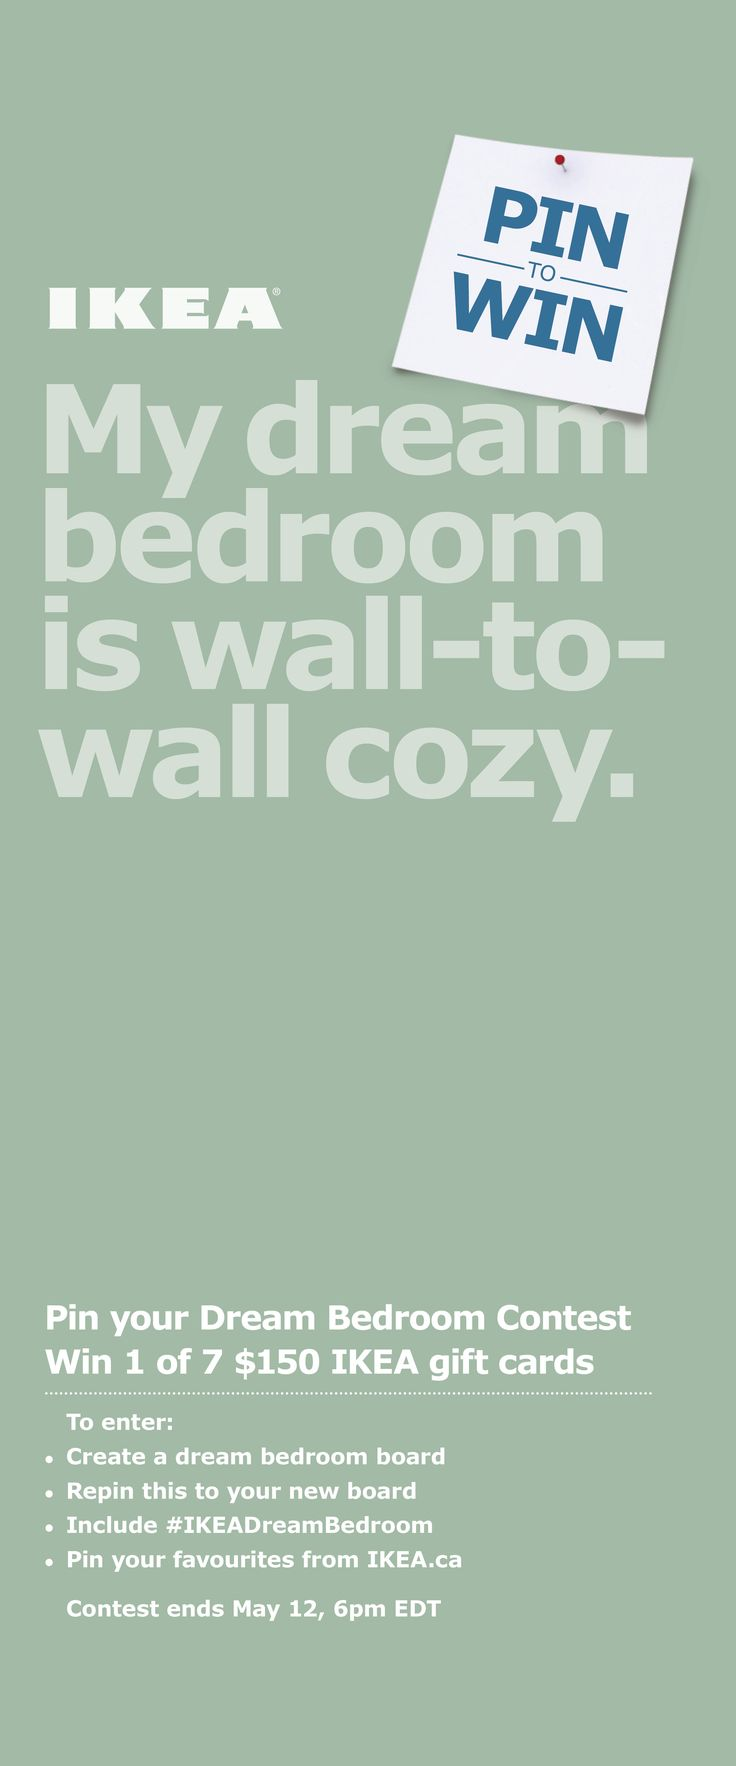 To visit IKEA.ca, simply click on the pin. For full rules and regulations visit IKEA.ca/dreambedroom. #IKEADreamBedroom.